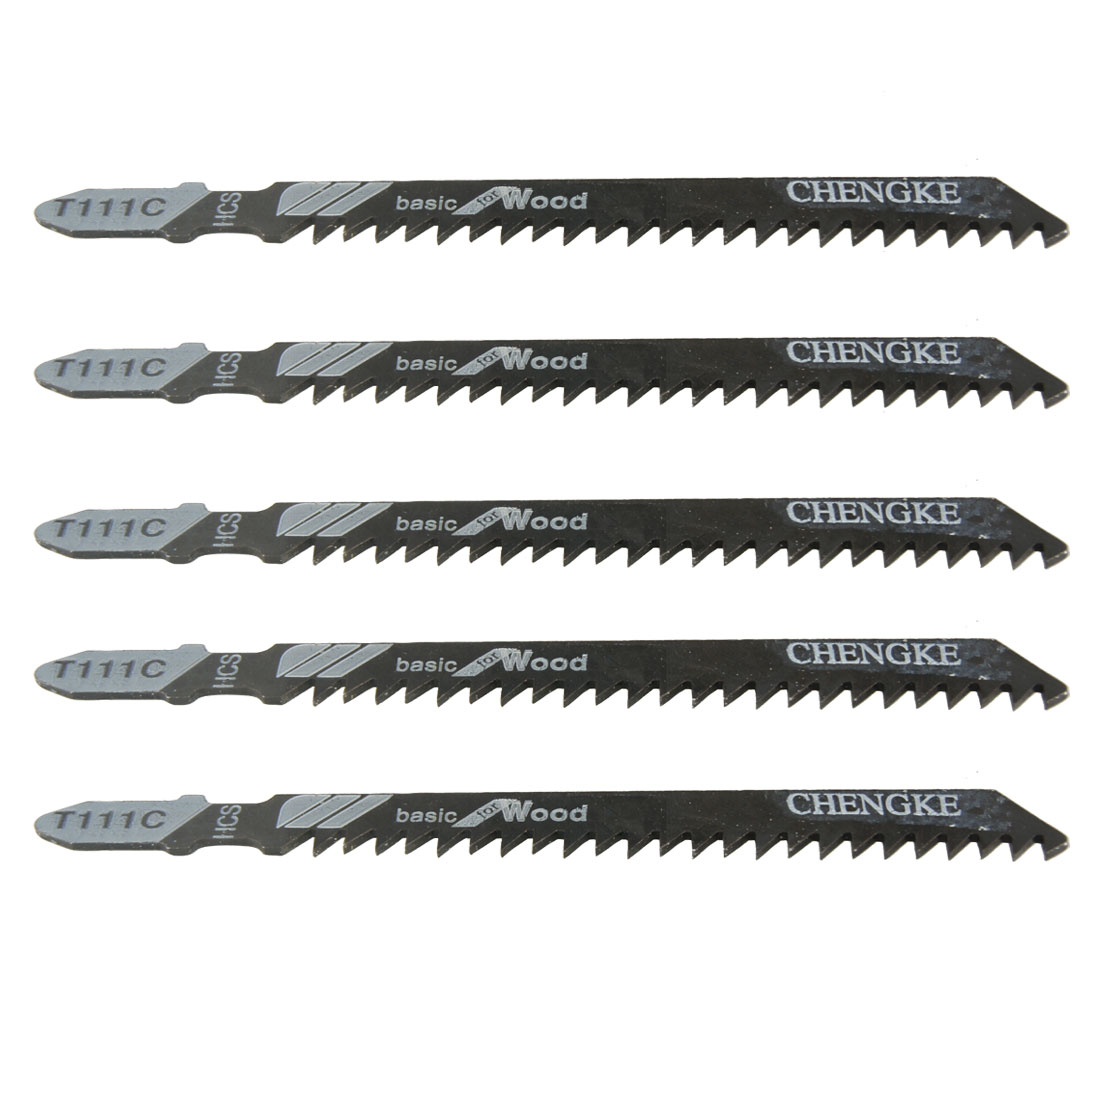 "5 Pcs 3.9"" Long T111C Jig Saw Blades for Electric Power Tool"